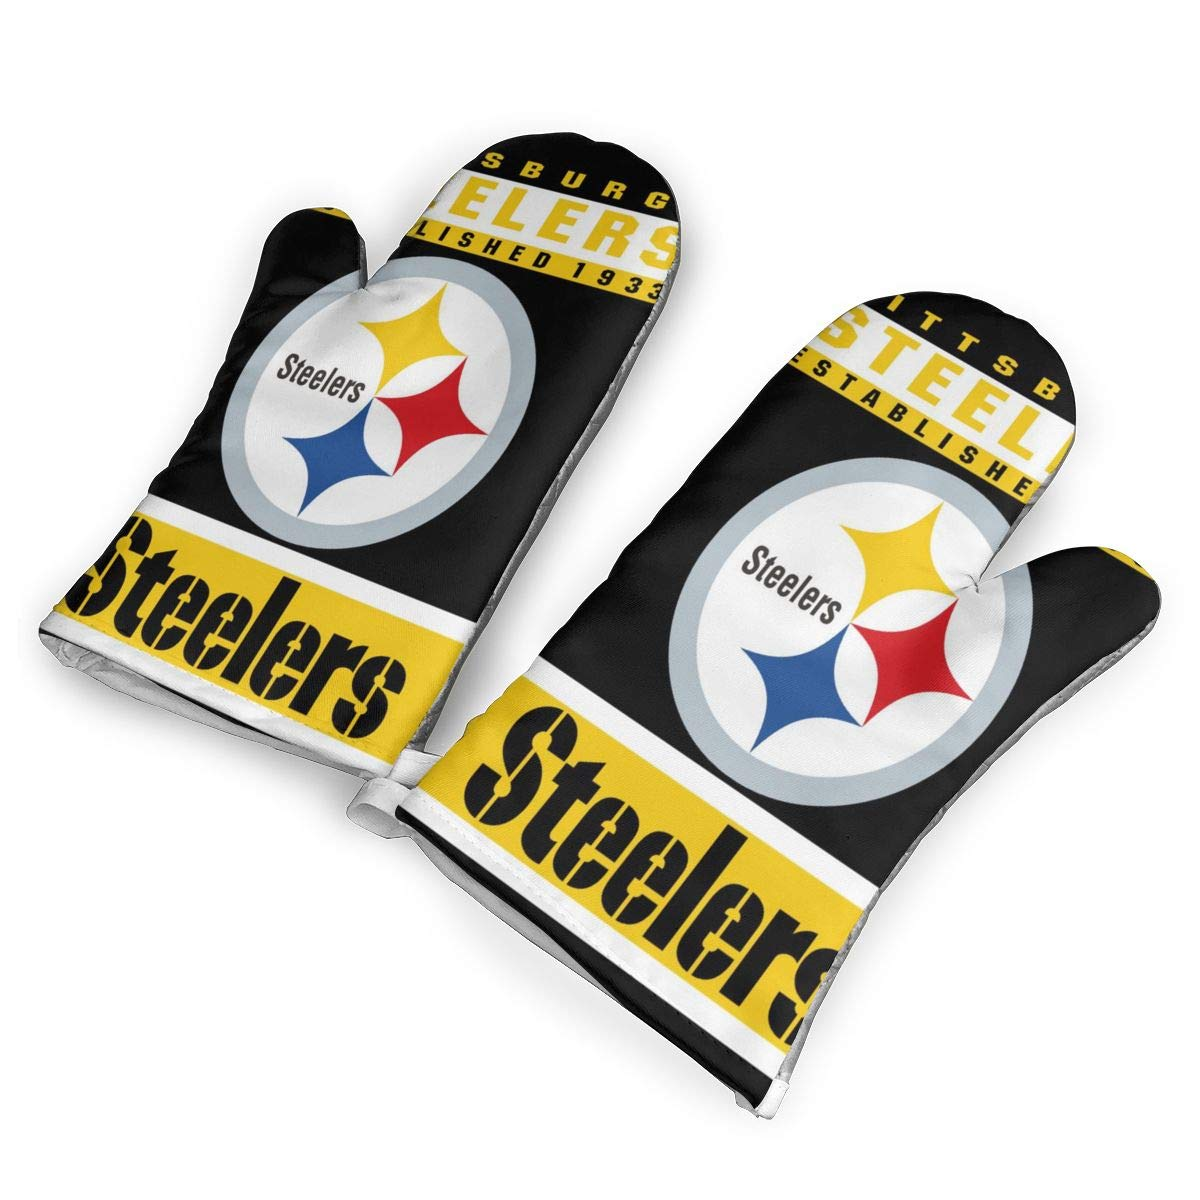 not Pittsburgh Steelers Oven Mitts with Polyester Fabric Printed Pattern,1 Pair of Heat Resistant Oven Gloves for Cooking,Baking,Grilling,Barbecue Potholders